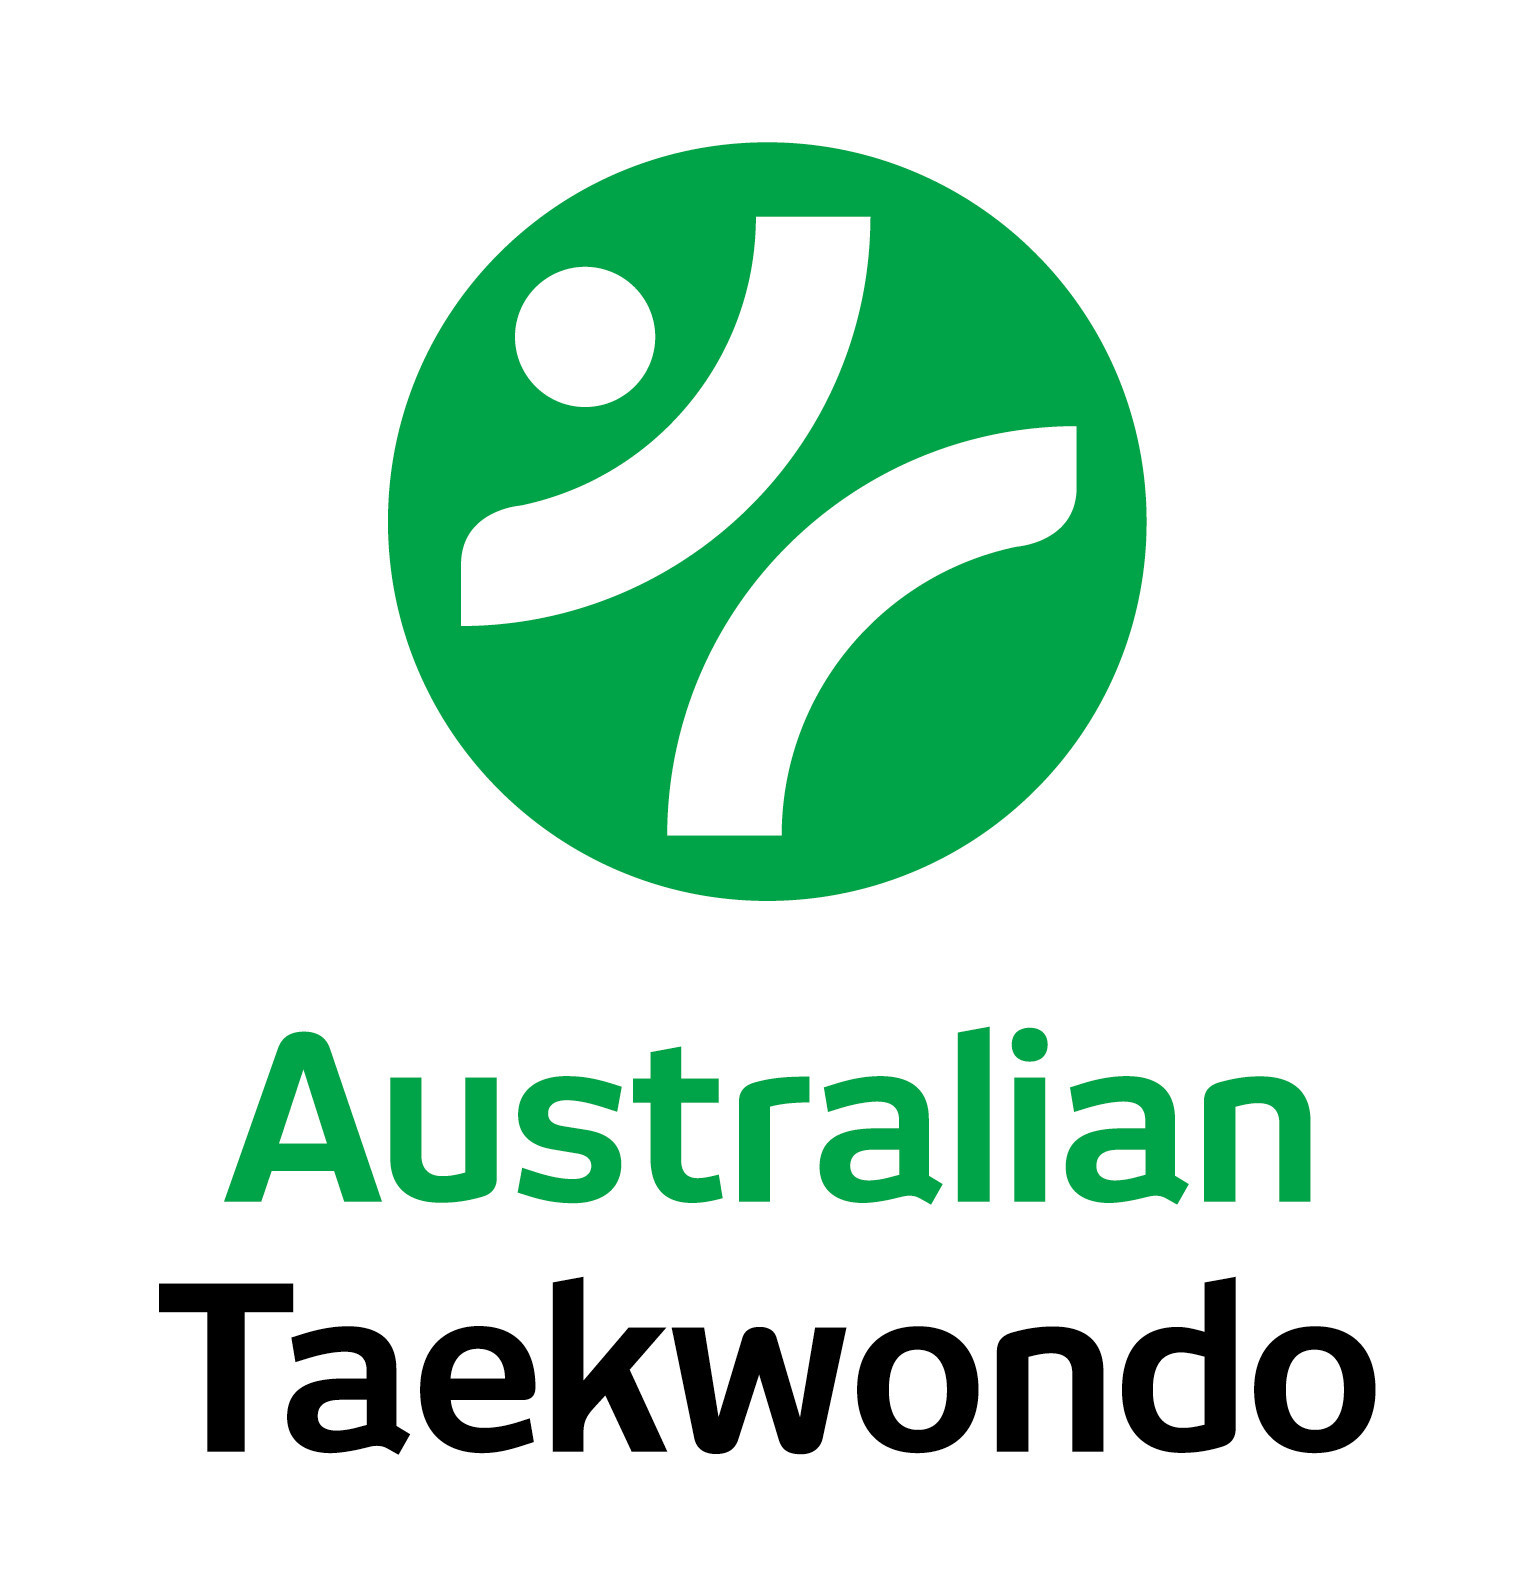 Australian Taekwondo announce partnership with marketing company as part of rebrand